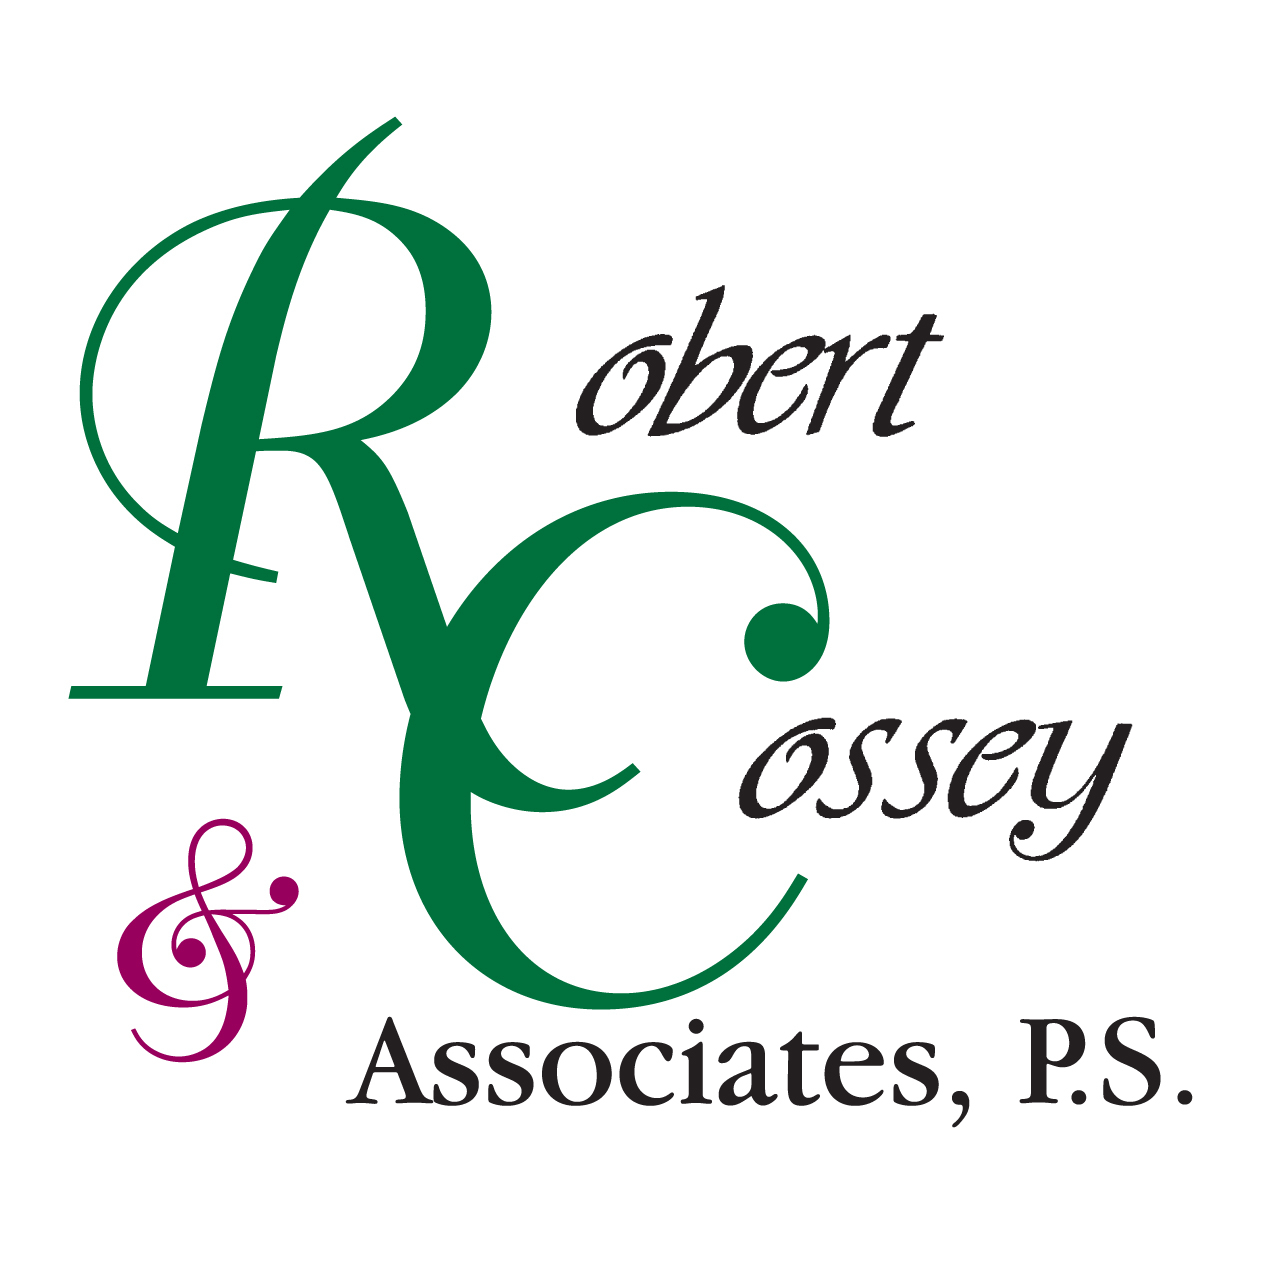 Robert Cossey & Associates, P.S. - Spokane, WA 99201 - (888) 400-3560 | ShowMeLocal.com